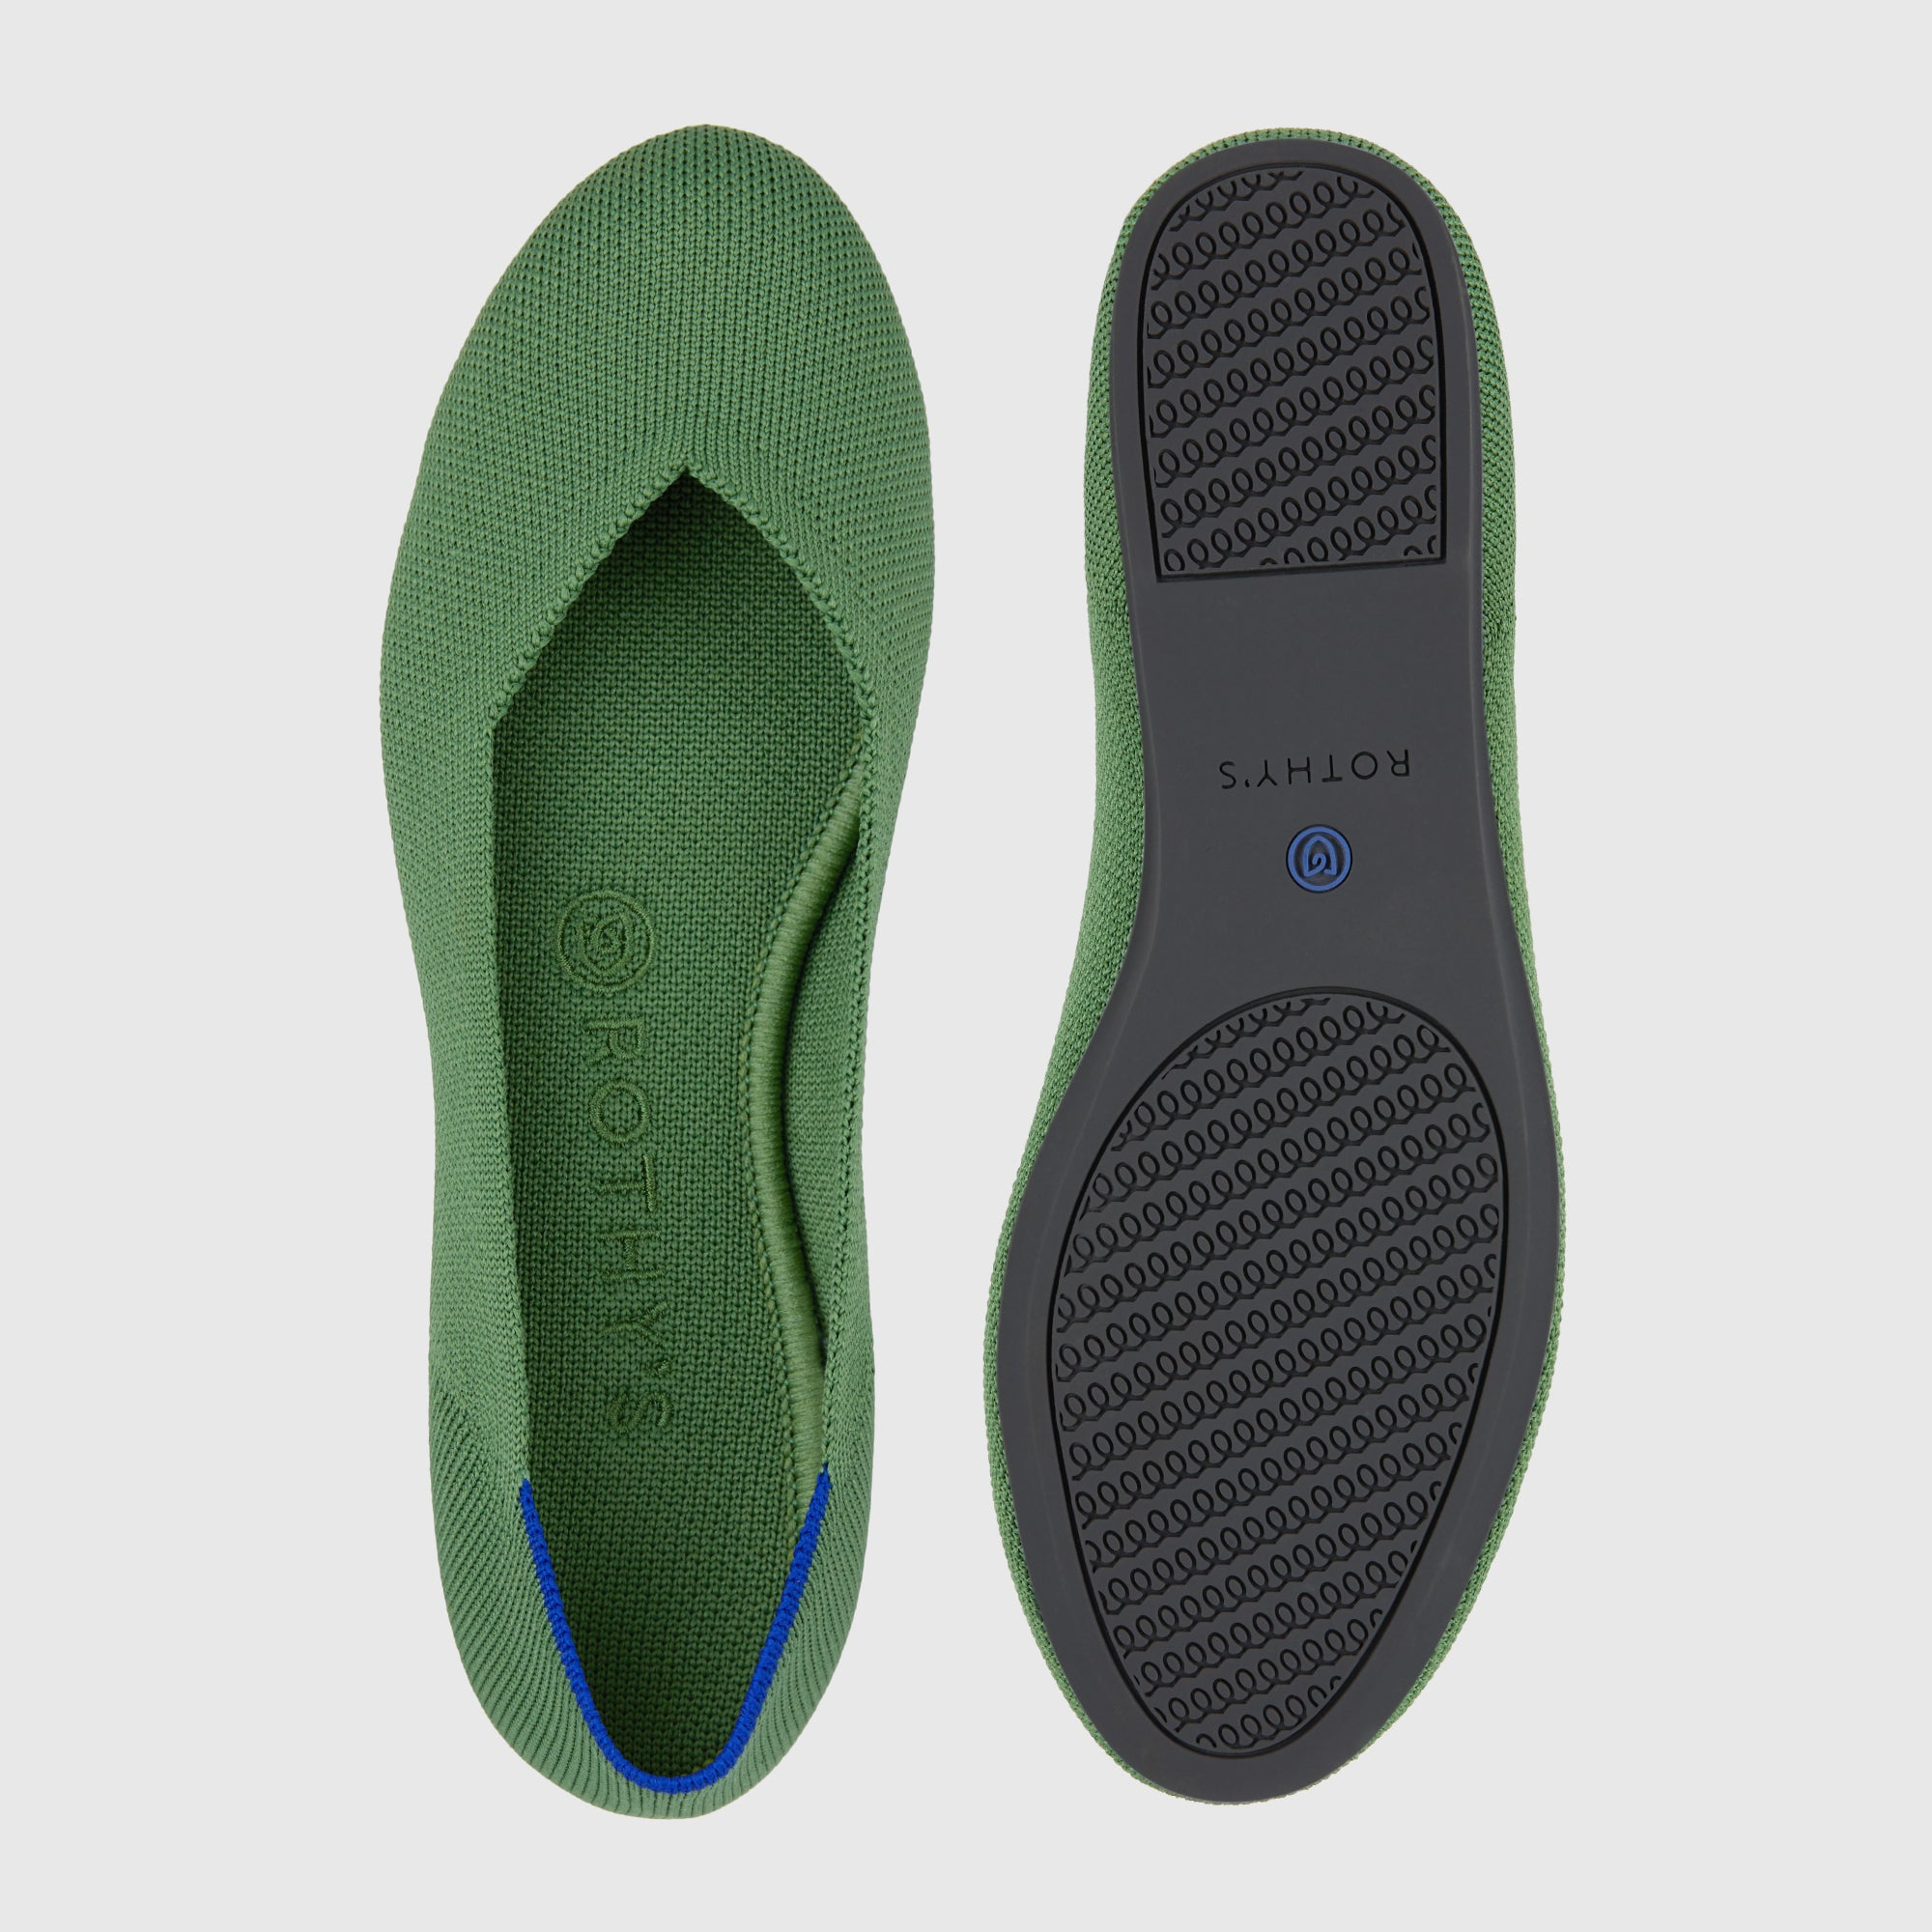 The Flat round toe shoe in Willow shown from the top alongside a view of the sole.